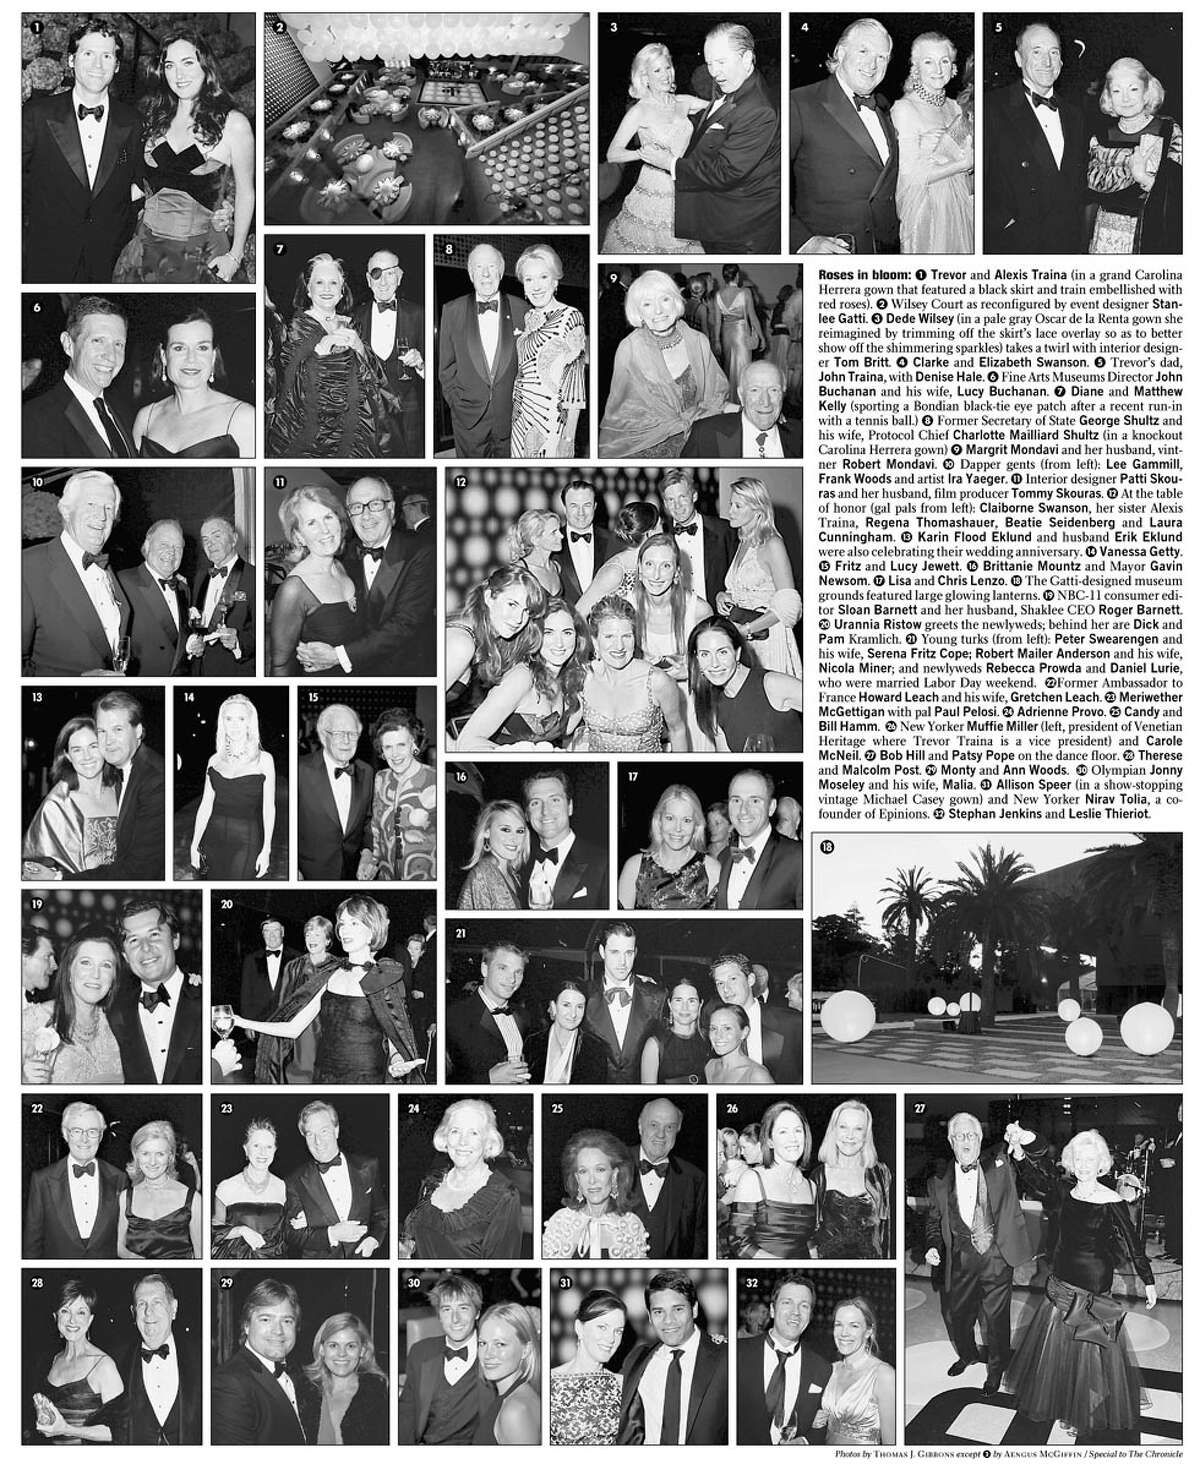 Roses in bloom. Photos by Thomas J. Gibbons, special to the Chronicle except number 2 by Aengus McGiffin, special to the Chronicle